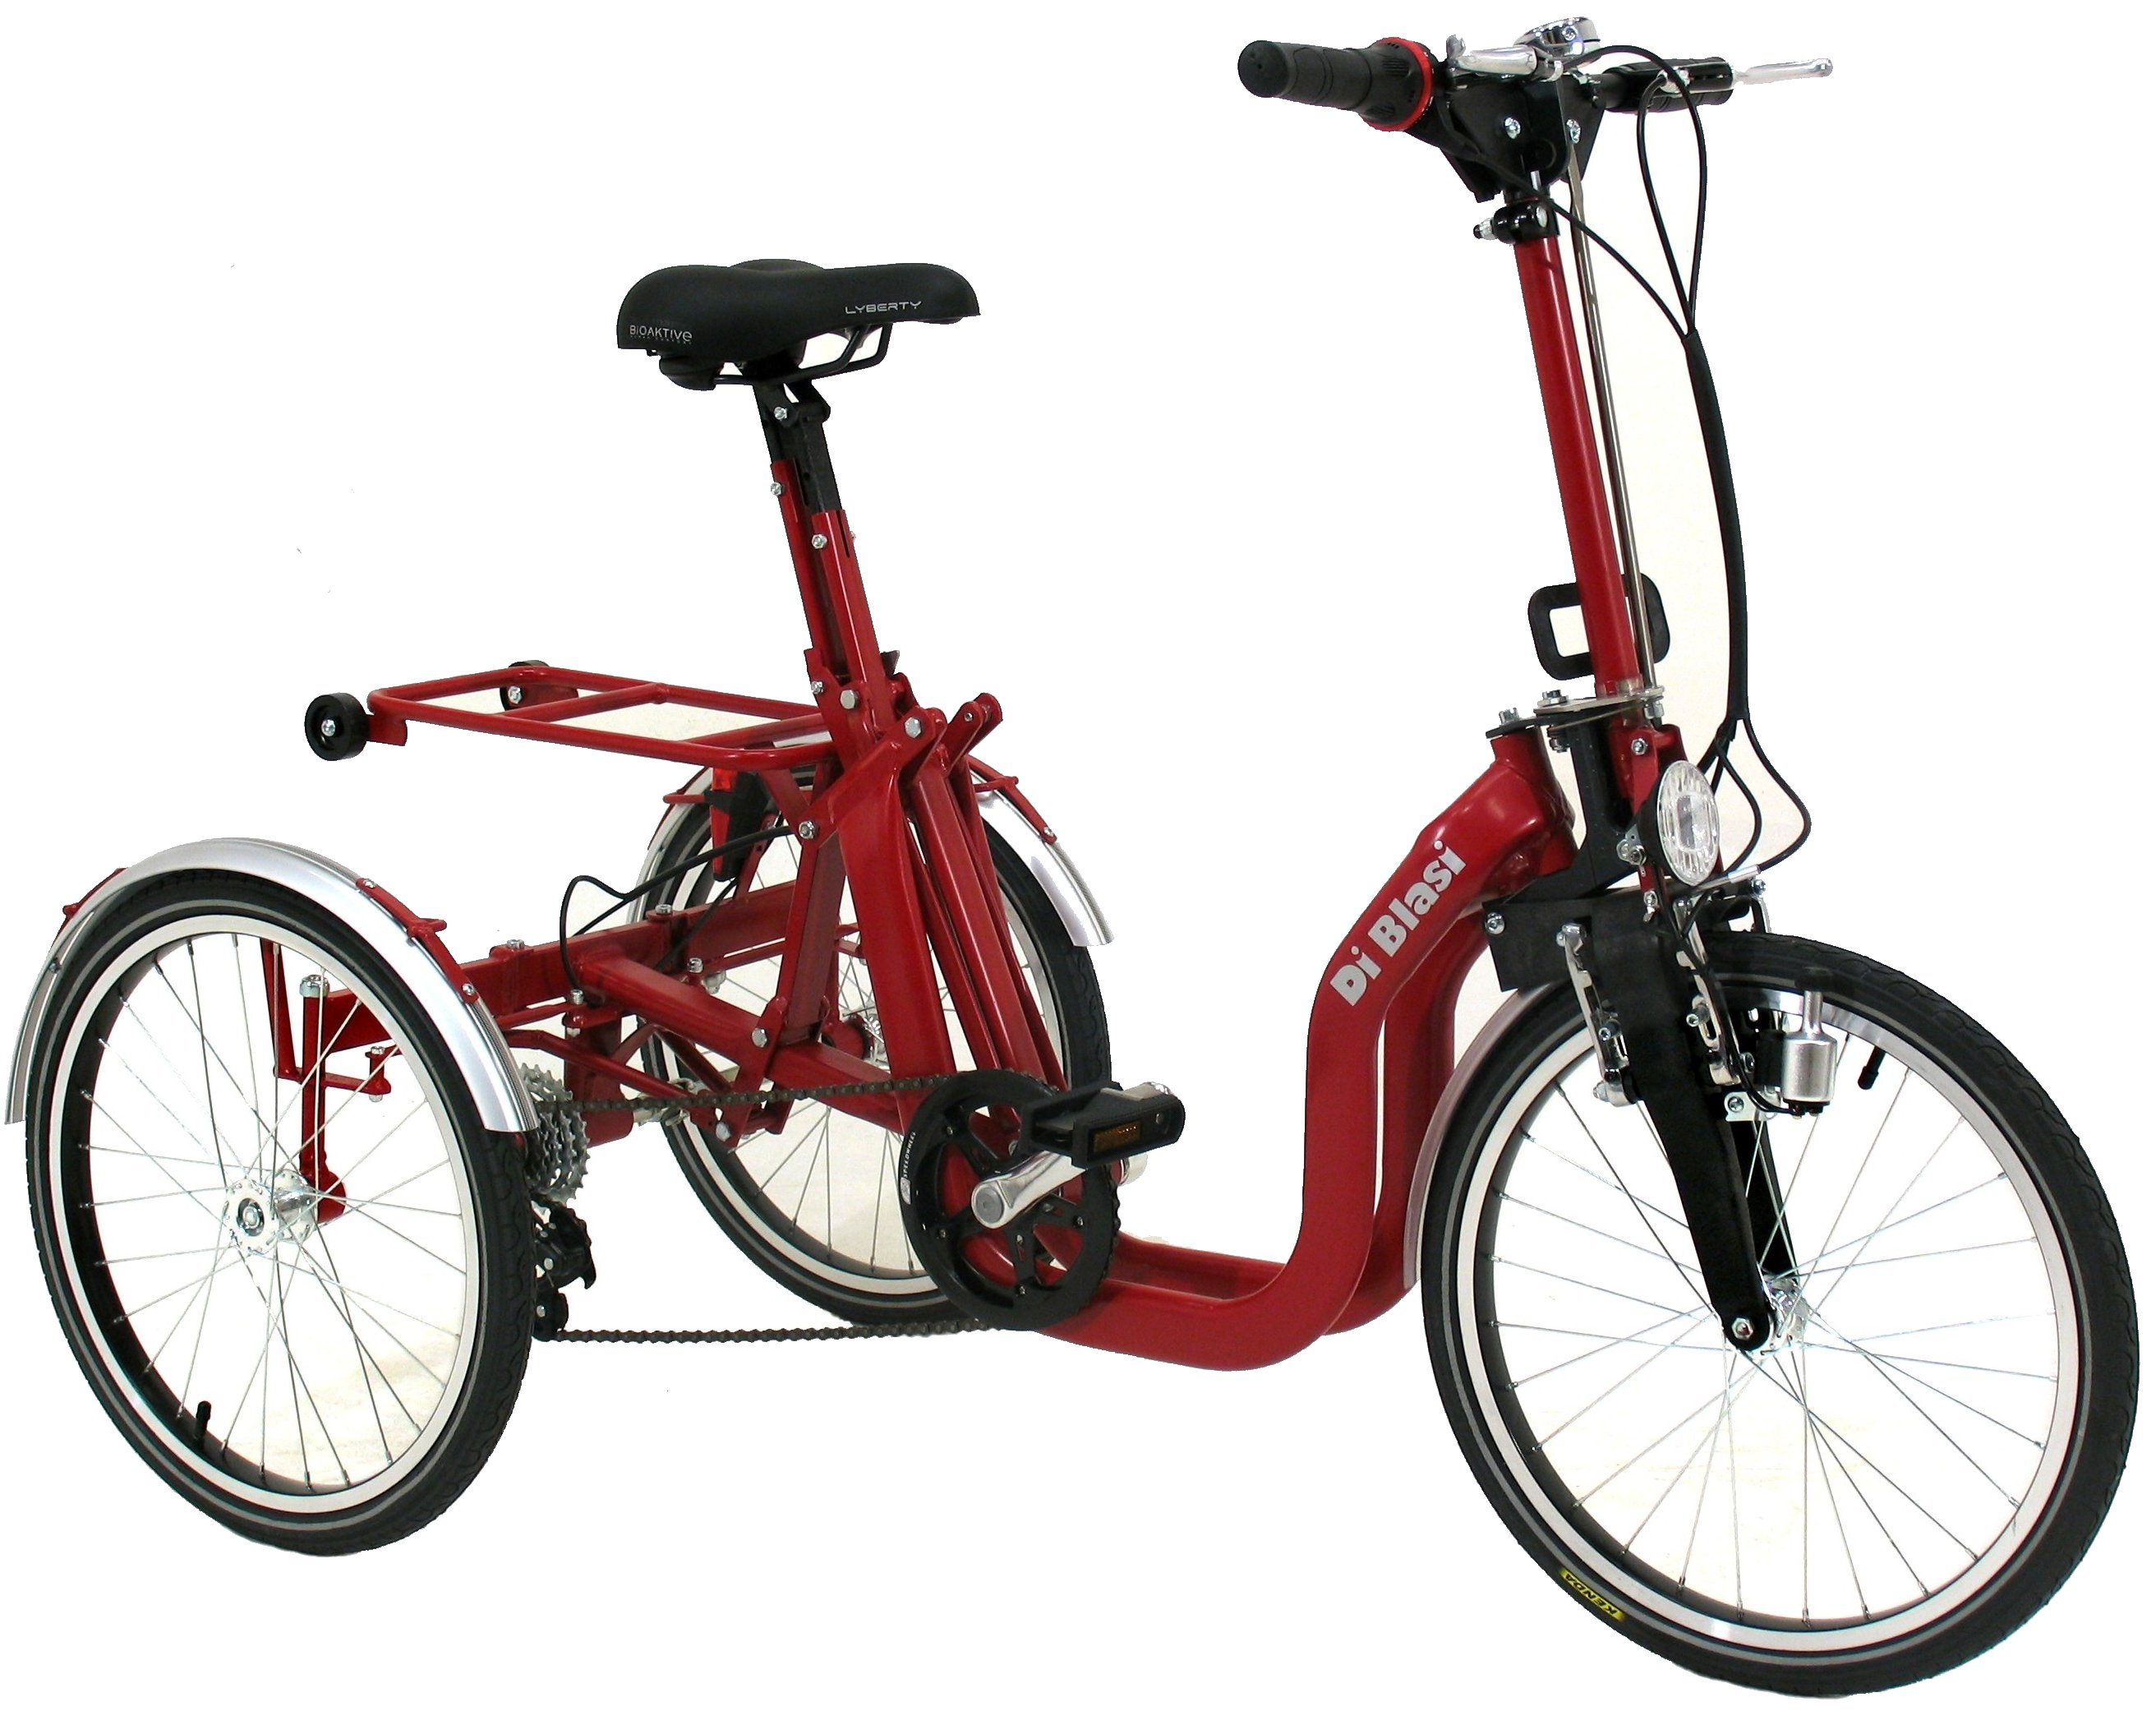 Di Blasi R32 Special Needs Folding 5 Speed Italian Tricycle